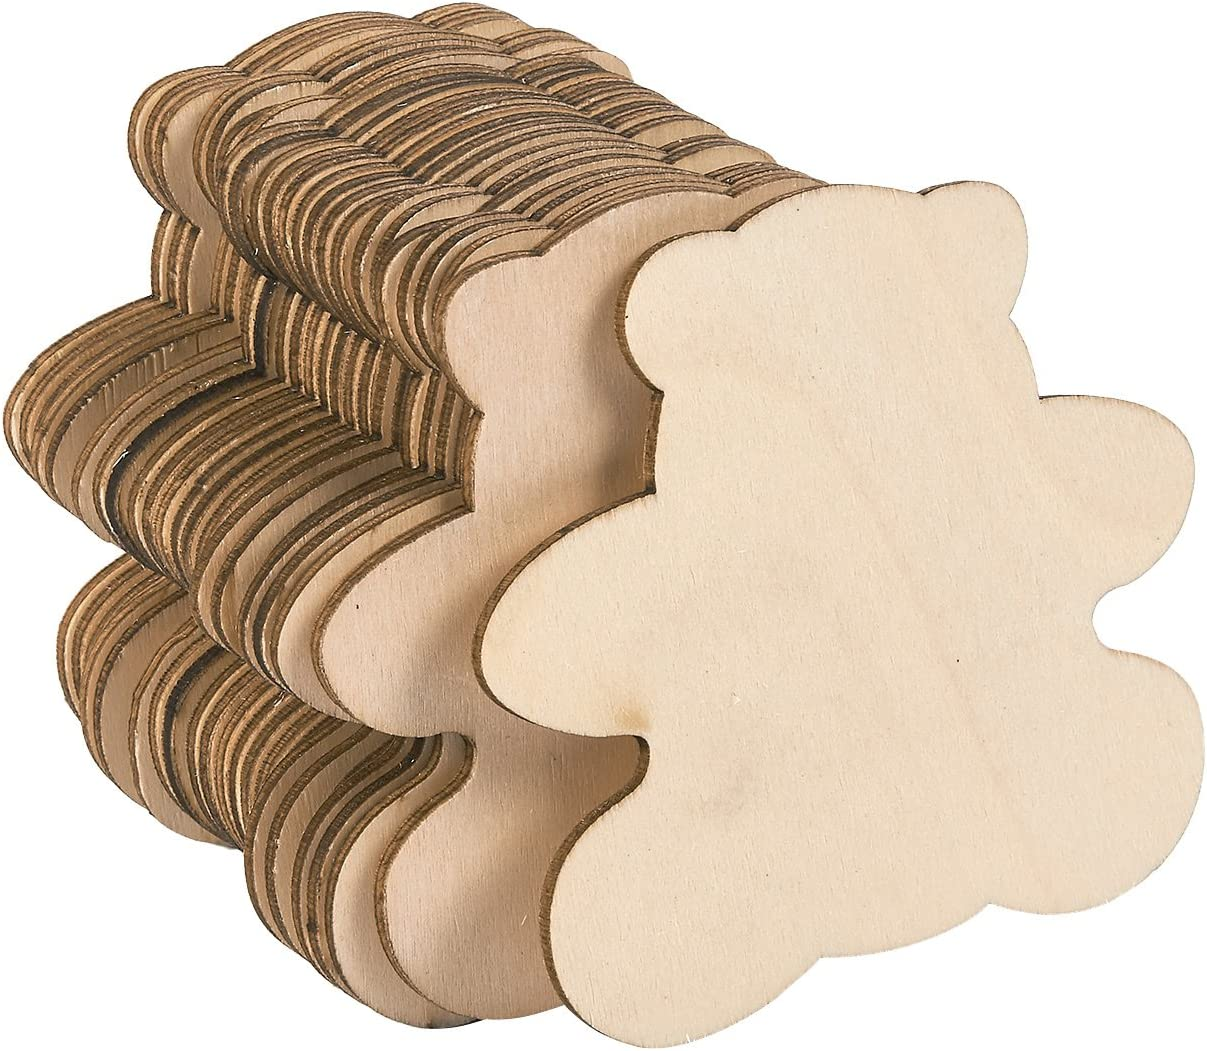 Juvale Wood Cutouts for Crafts, Teddy Bear (3.7 x 3.5 in, 24-Pack)